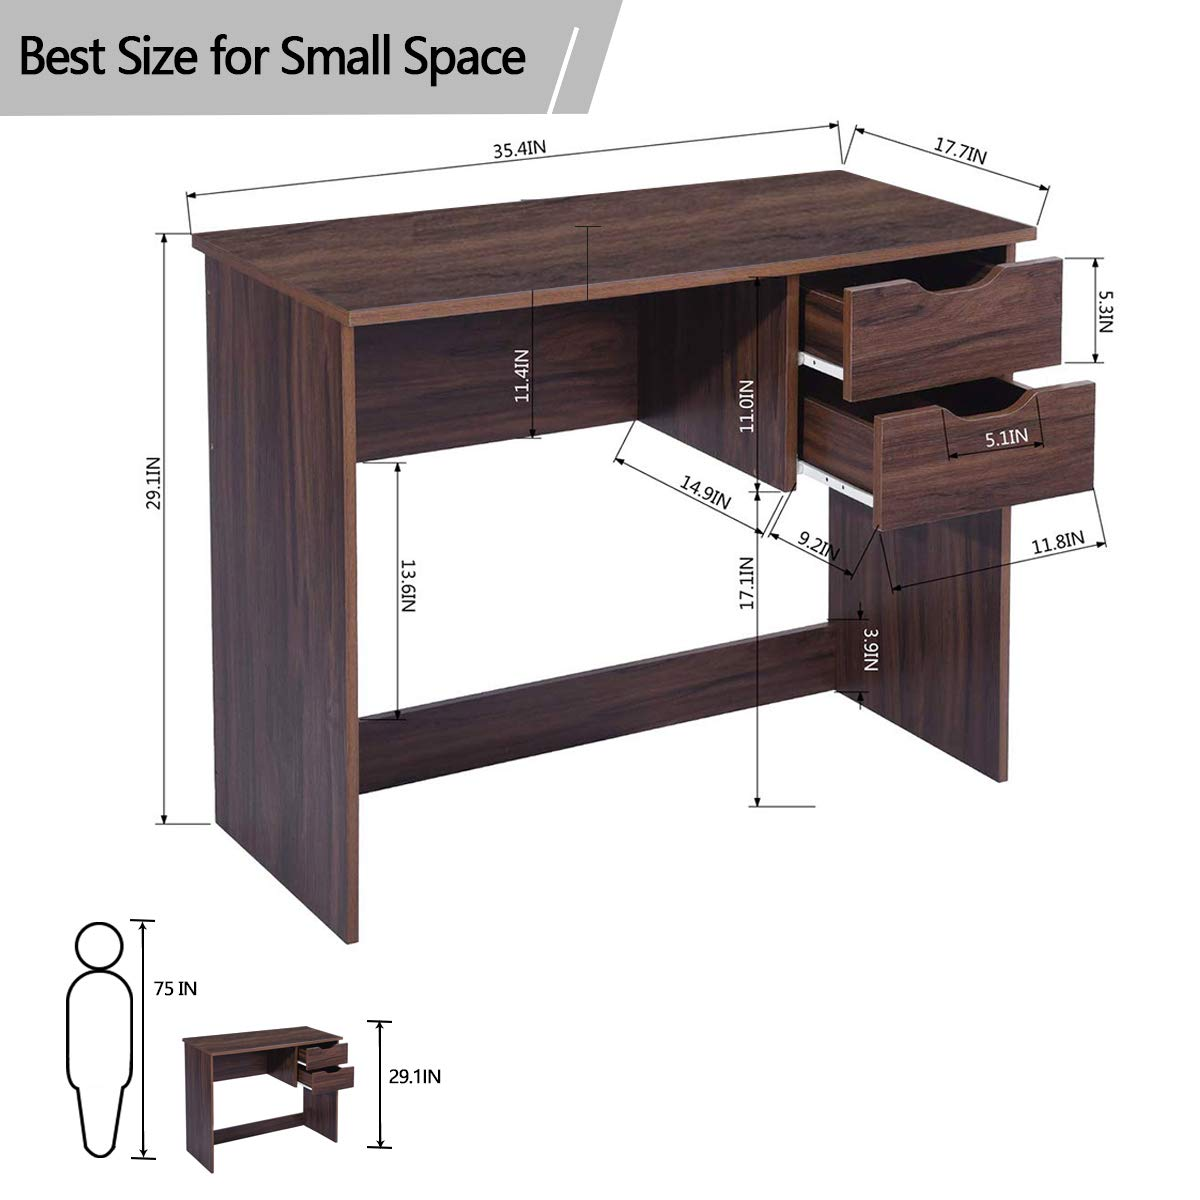 Writing Computer Desk Study Table With 2 Side Drawers Classic Home Office Laptop Desk Walnut Brown Wood Notebook Table 35 4x17 7x29 1 Inches